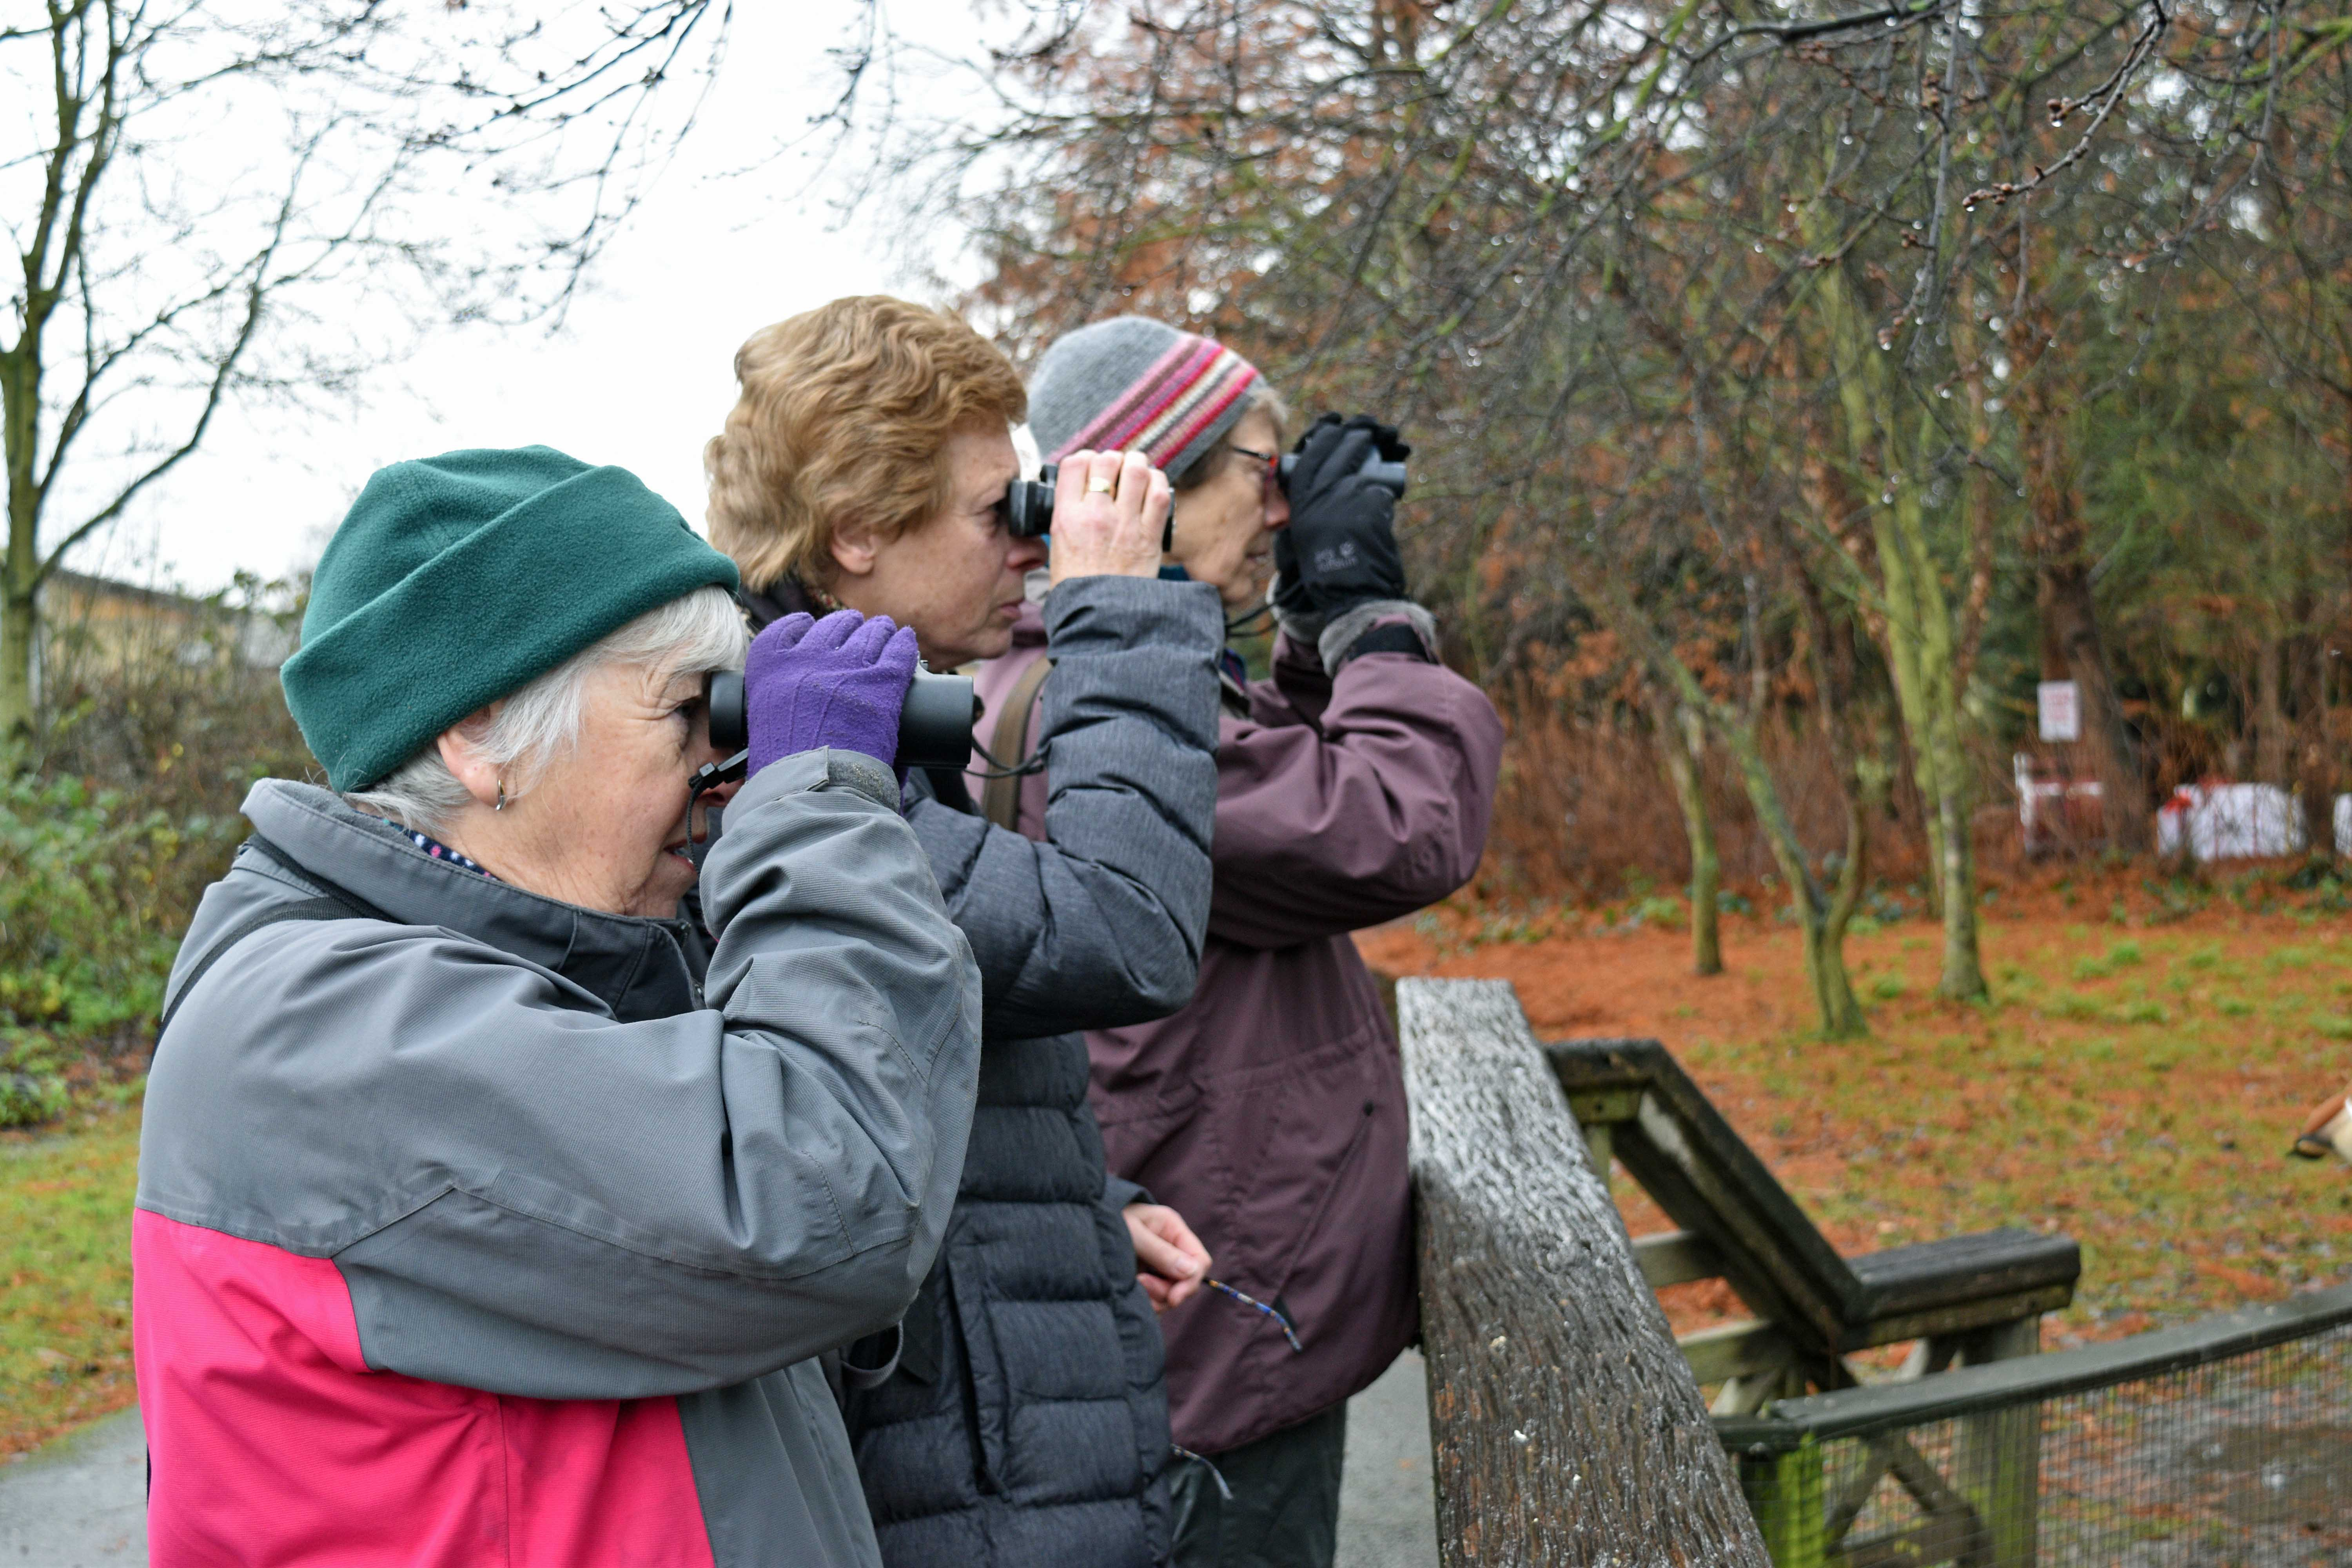 Three go birding.